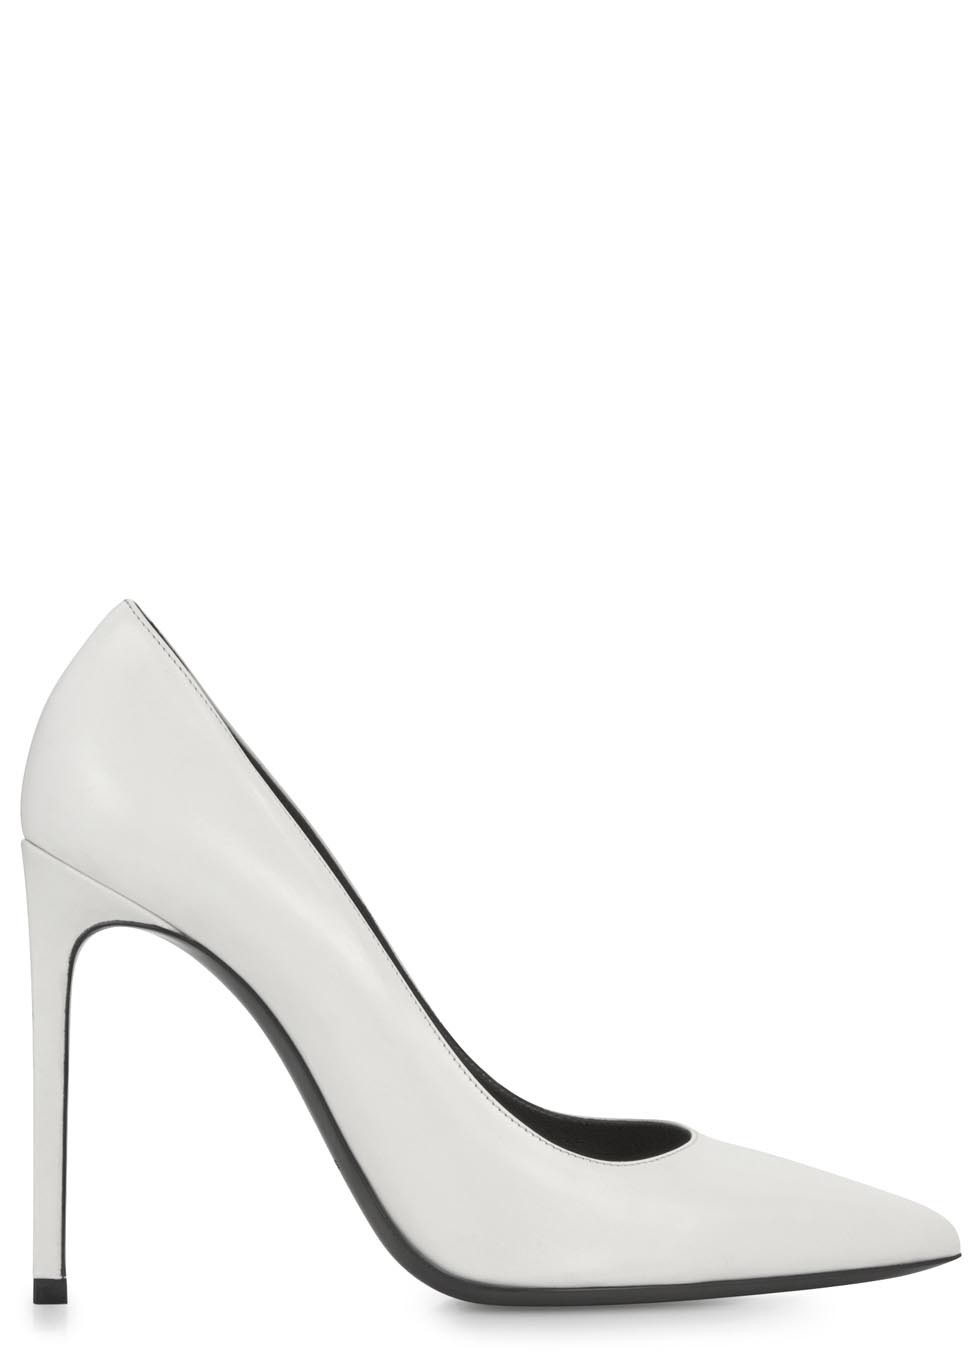 White pointed leather pumps  - Women